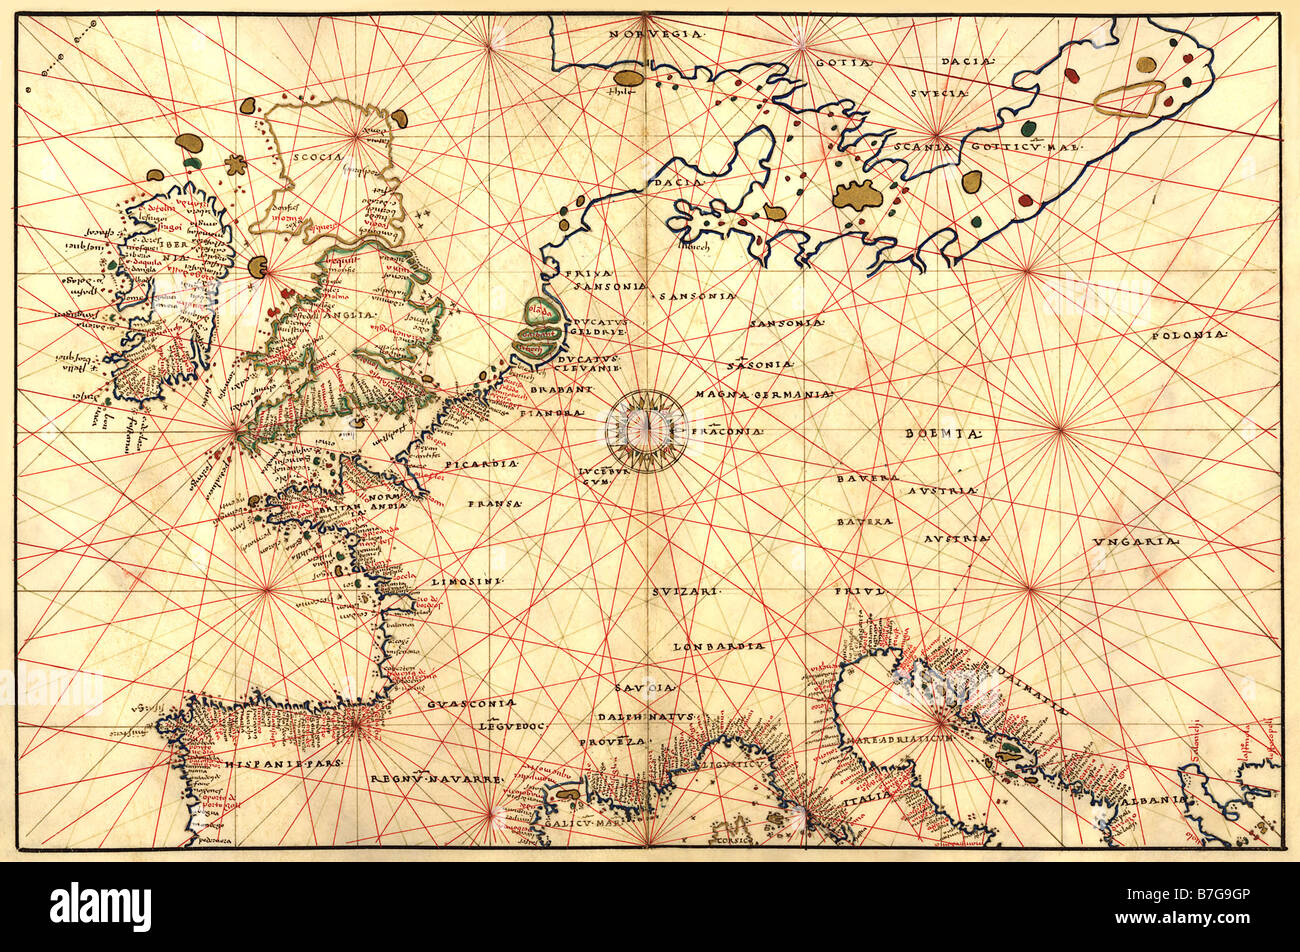 Atlas Map Germany Photos and Atlas Map Germany Images – Map of Germany and England